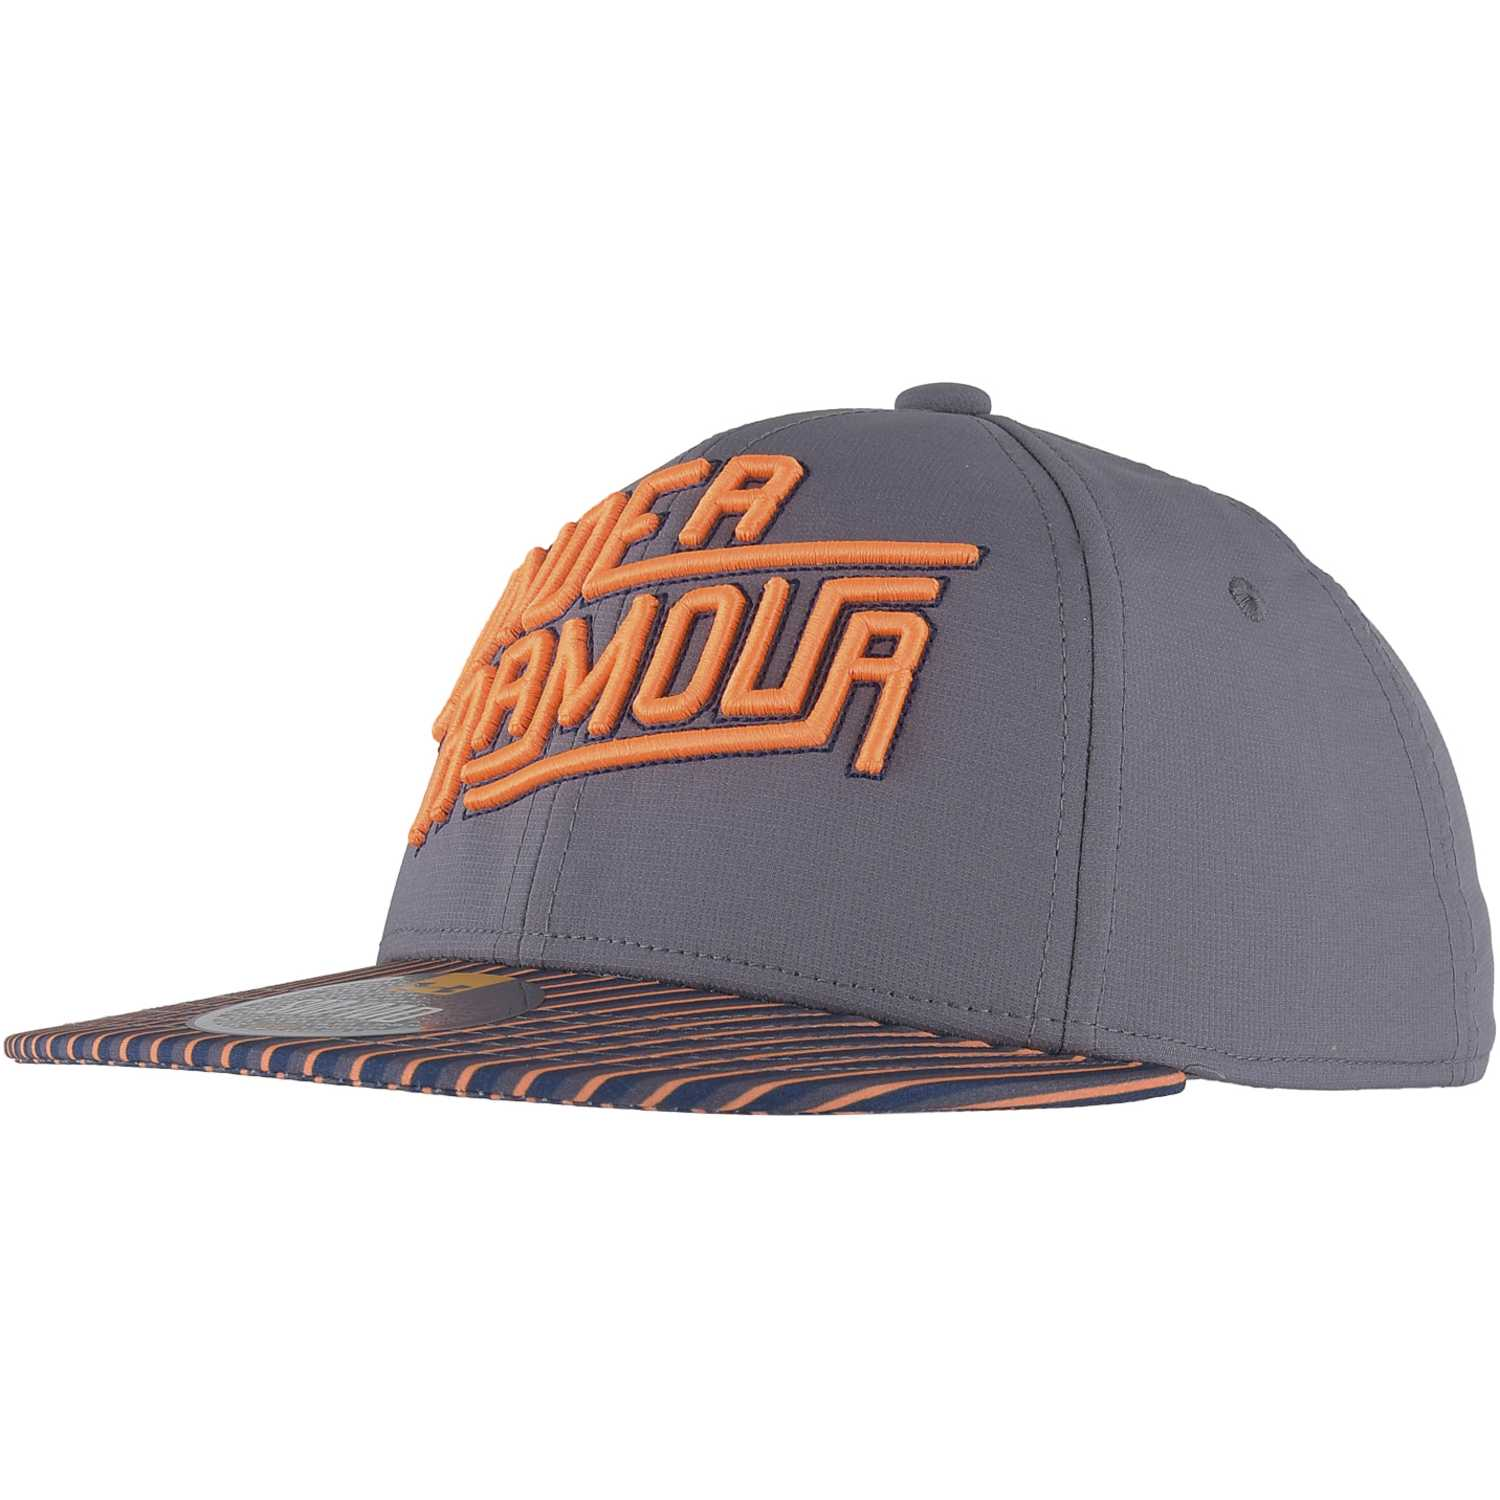 Under Armour eyes up update Gris / naranja Sombreros y Gorros